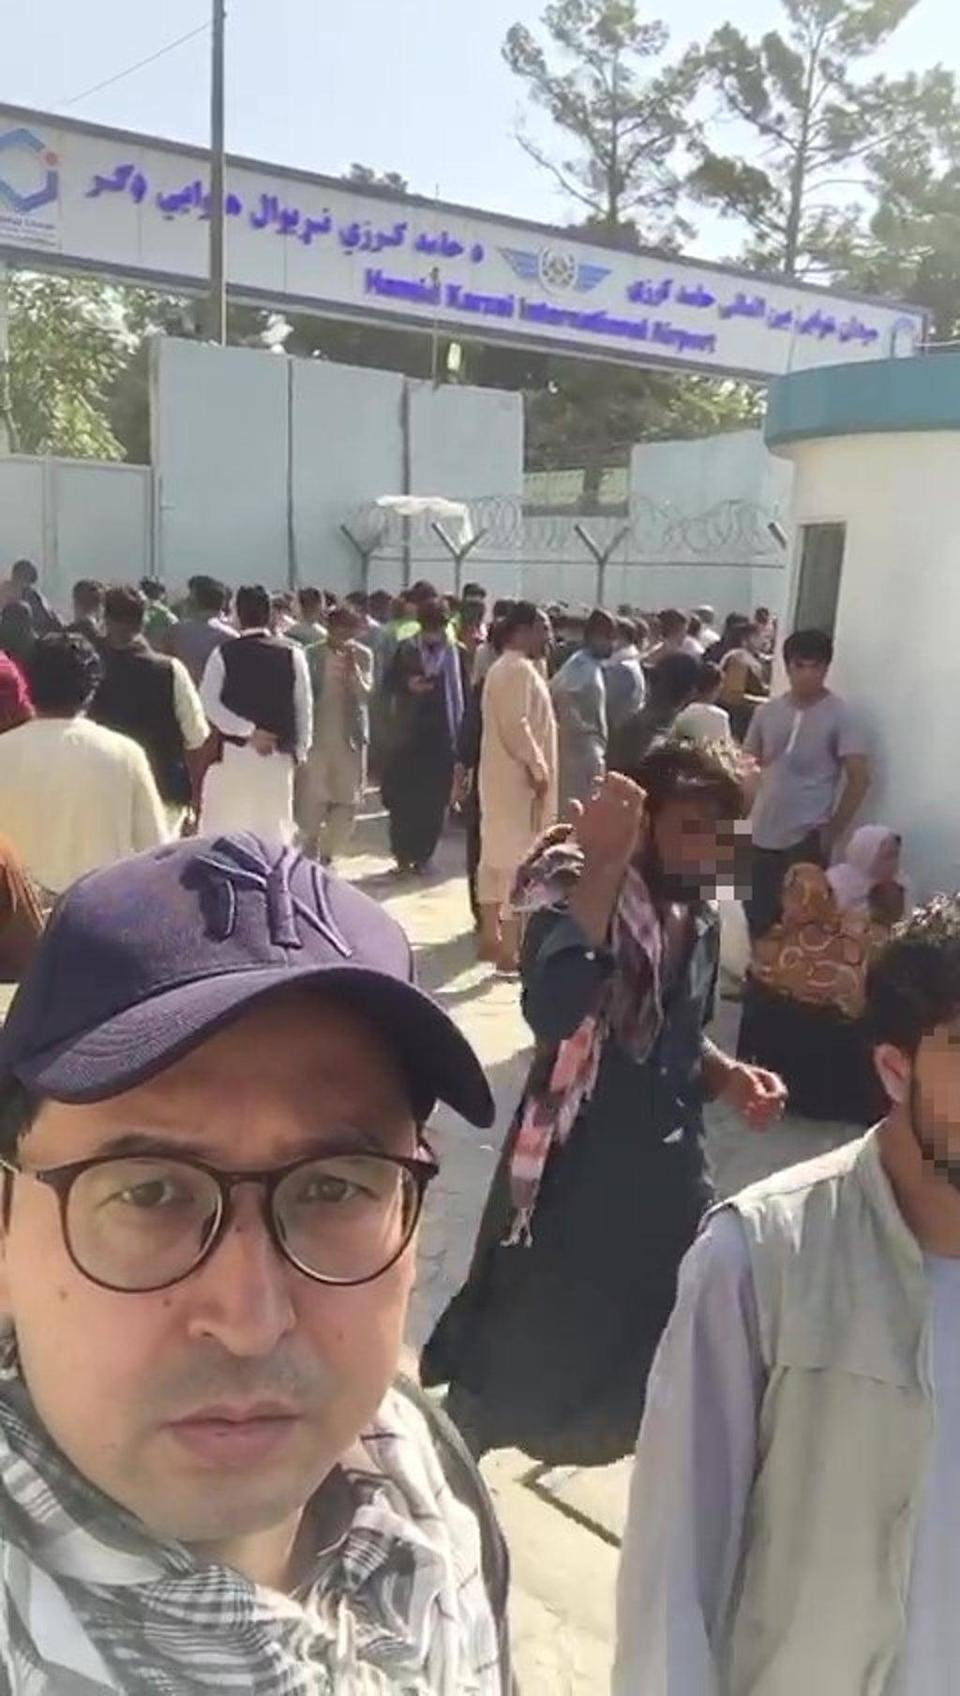 Mr Ghafoor said he had to wait for 11 hours to enter the compound of the aiport (Abdul Ghafoor)